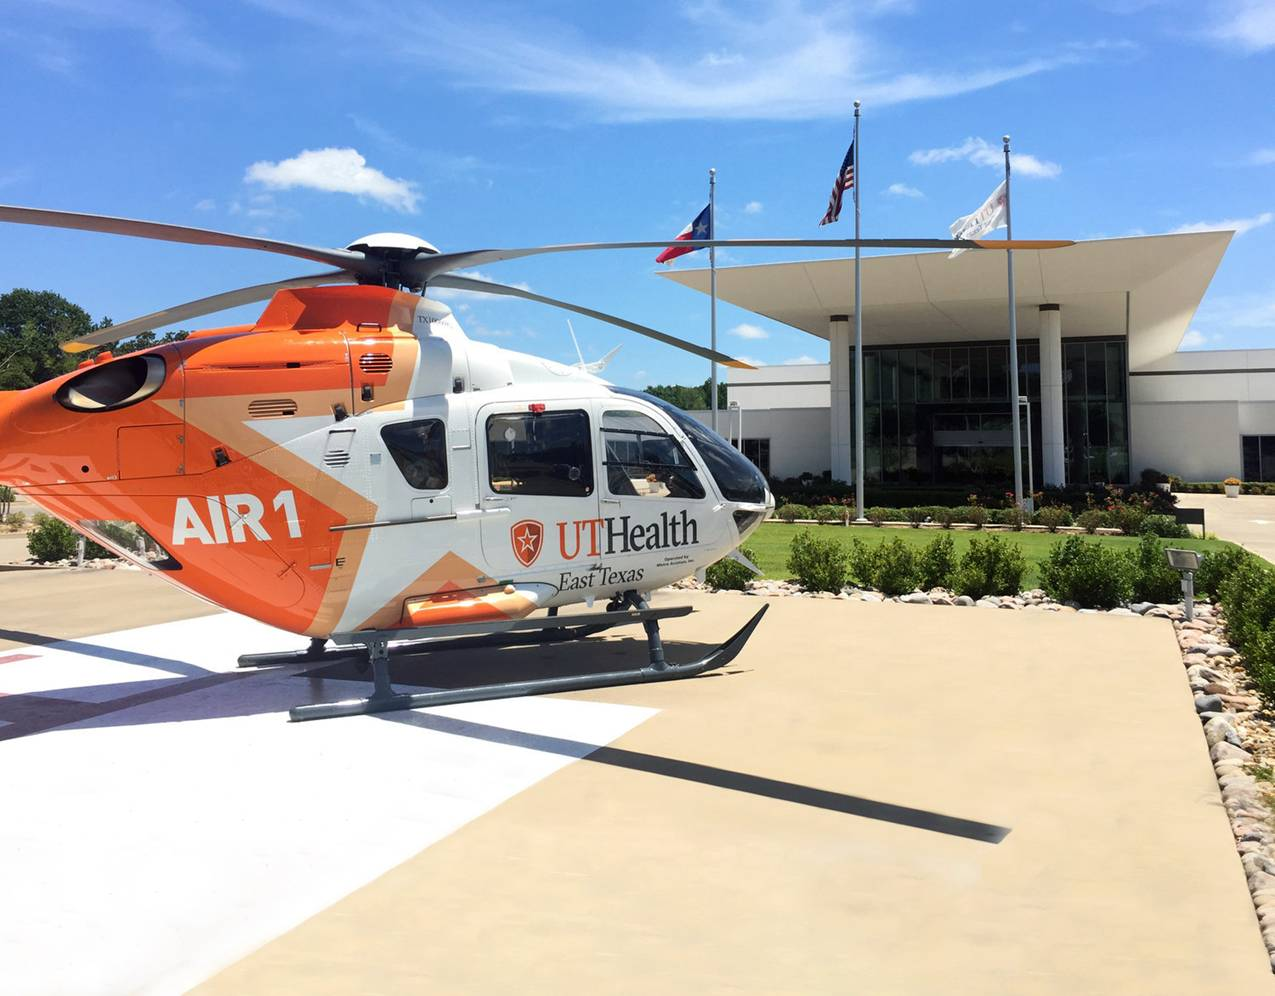 UT Health East Texas Air 1 now has three EC135s with IFR capabilities. Metro Photo